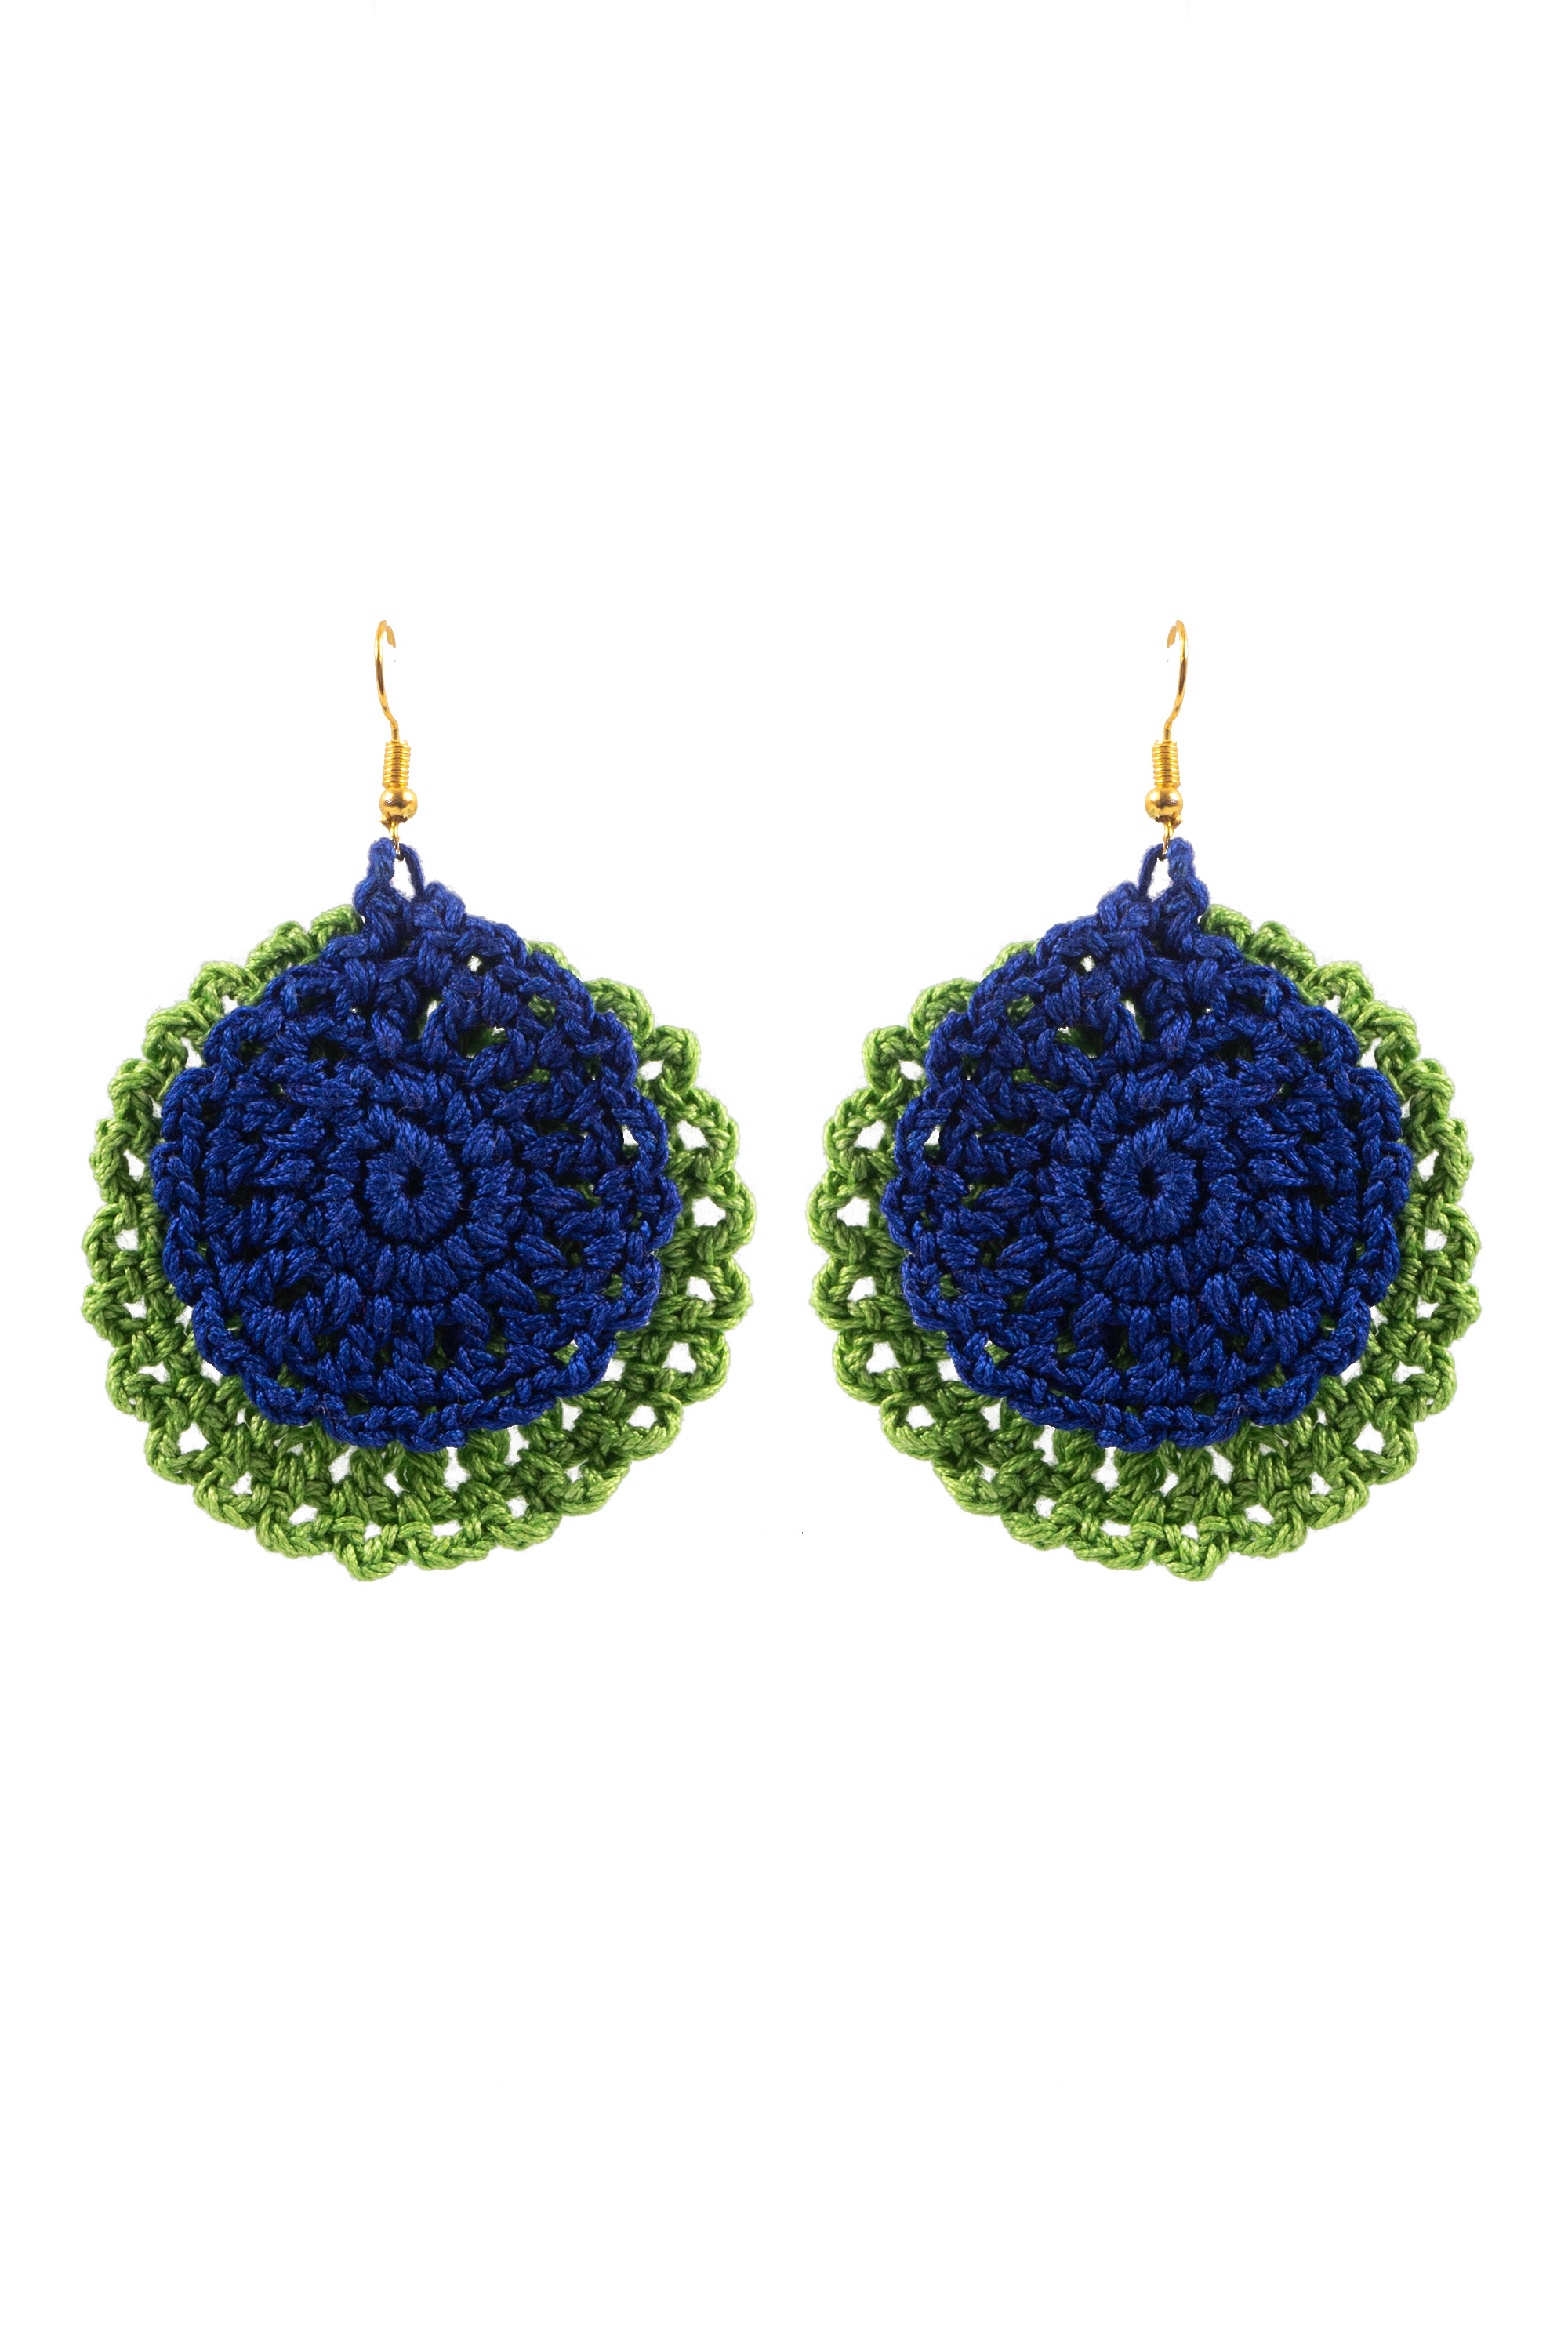 Happy Threads Crochet Earrings- Blue & Green